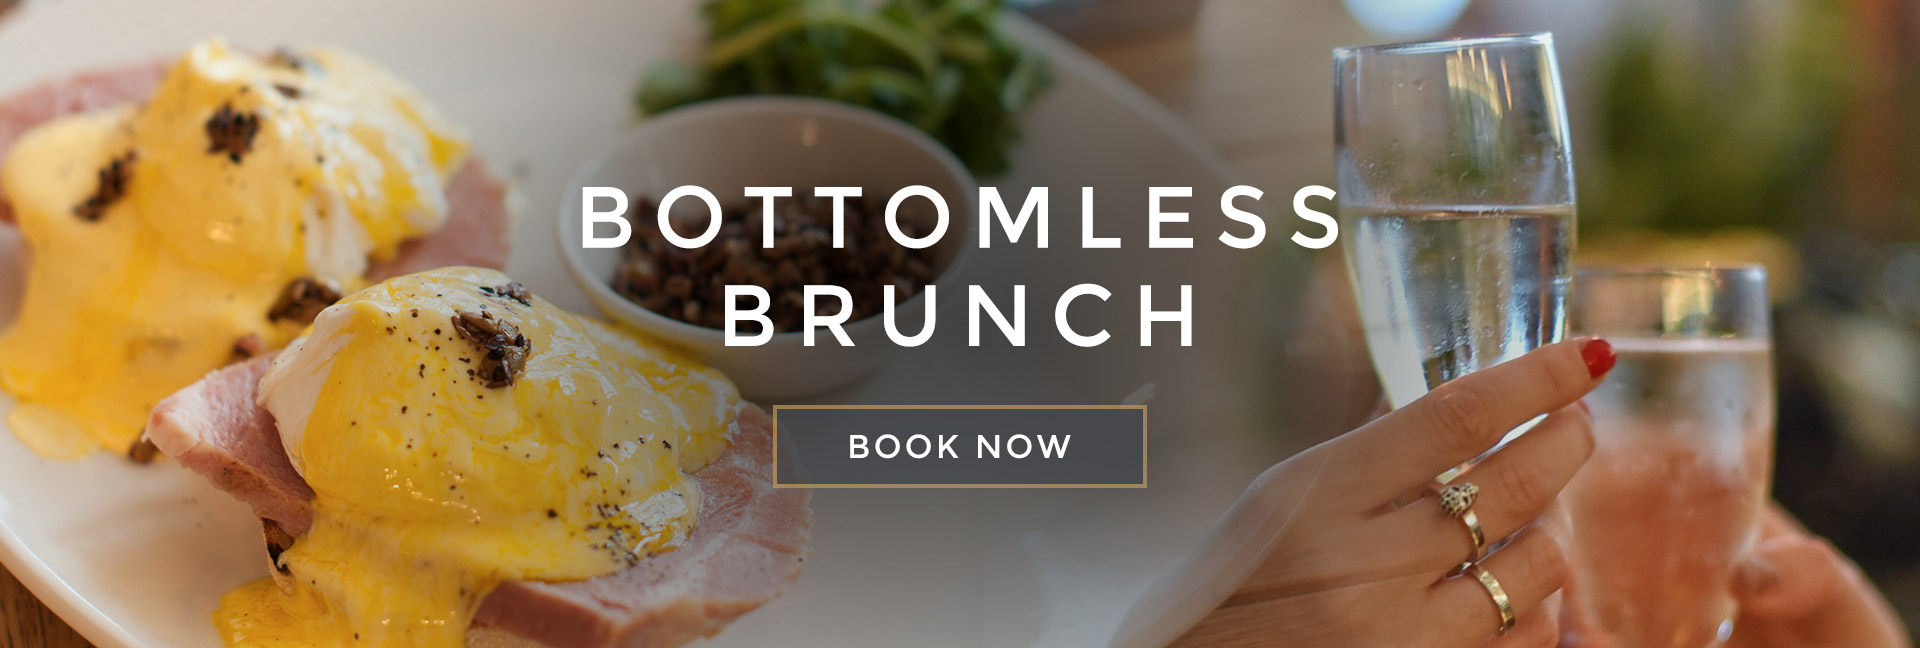 Bottomless Brunch at All Bar One Manchester - Book now